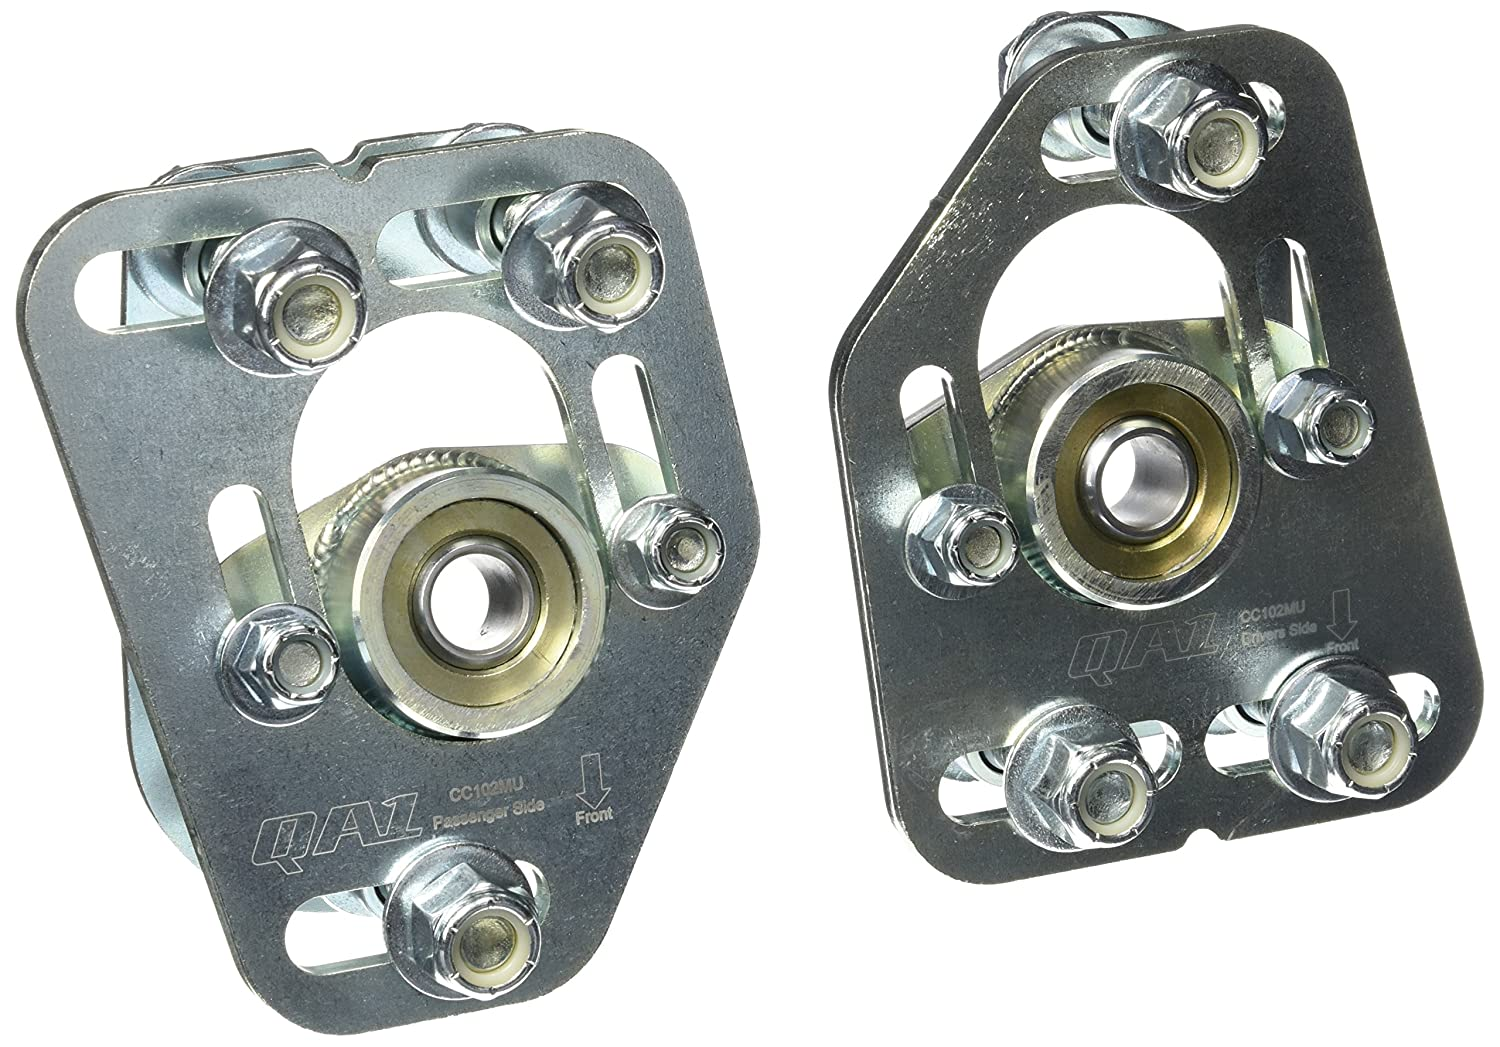 QA1 CC102MU Caster/Camber Plate for Mustang